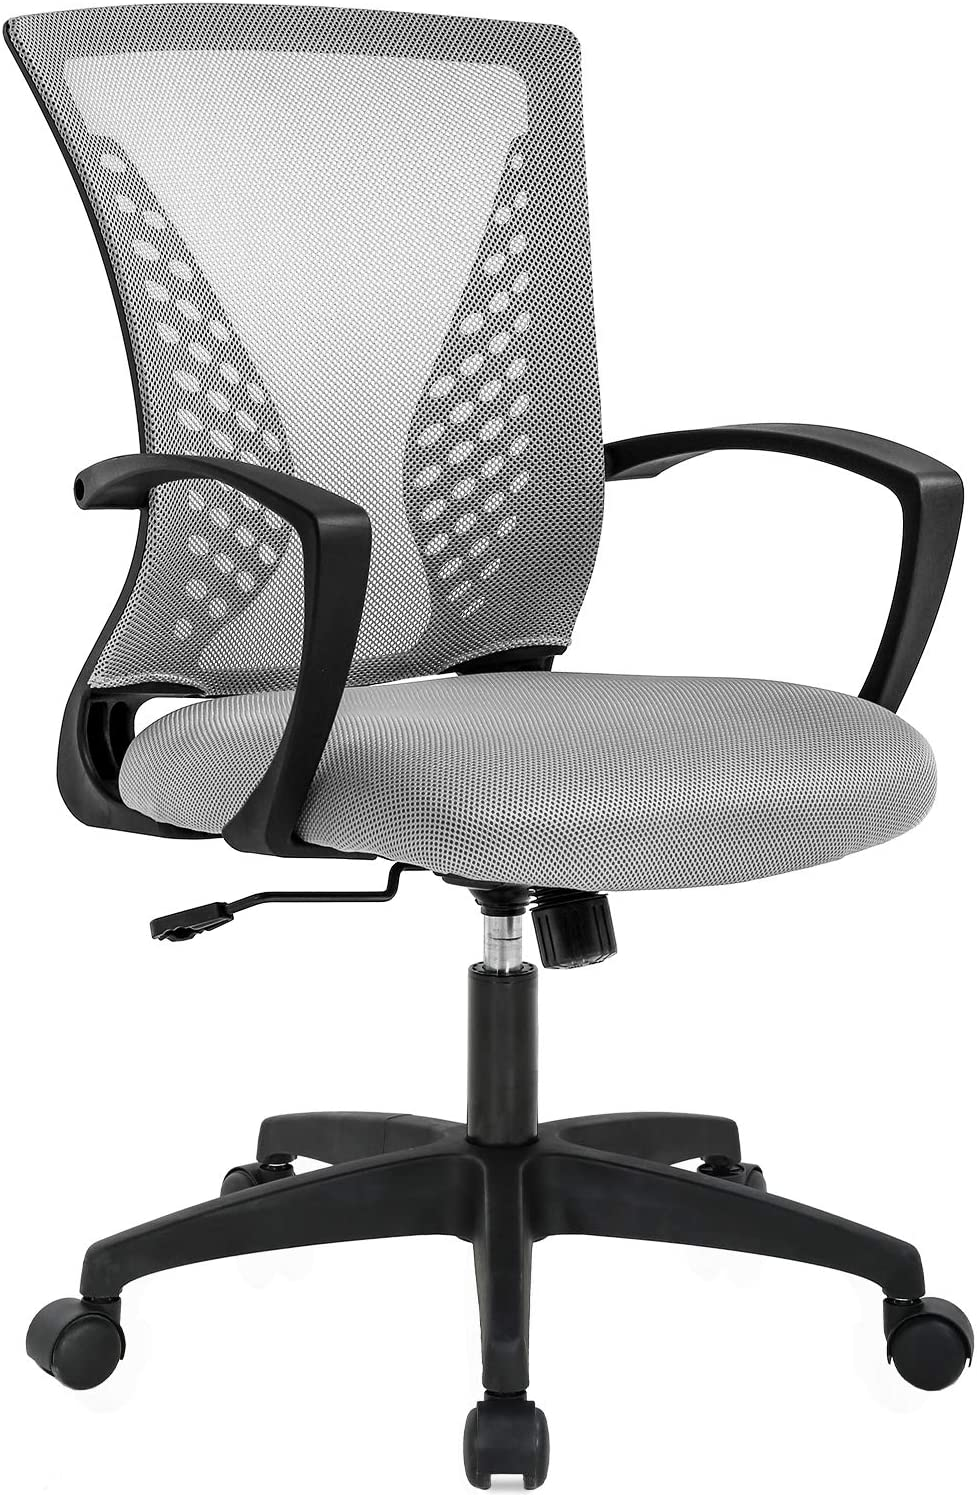 Office Chair Ergonomic Desk Chair Mesh Computer Chair with Lumbar Support Armrest Mid Back Rolling Swivel Task Adjustable Chair for Women Adults, Grey